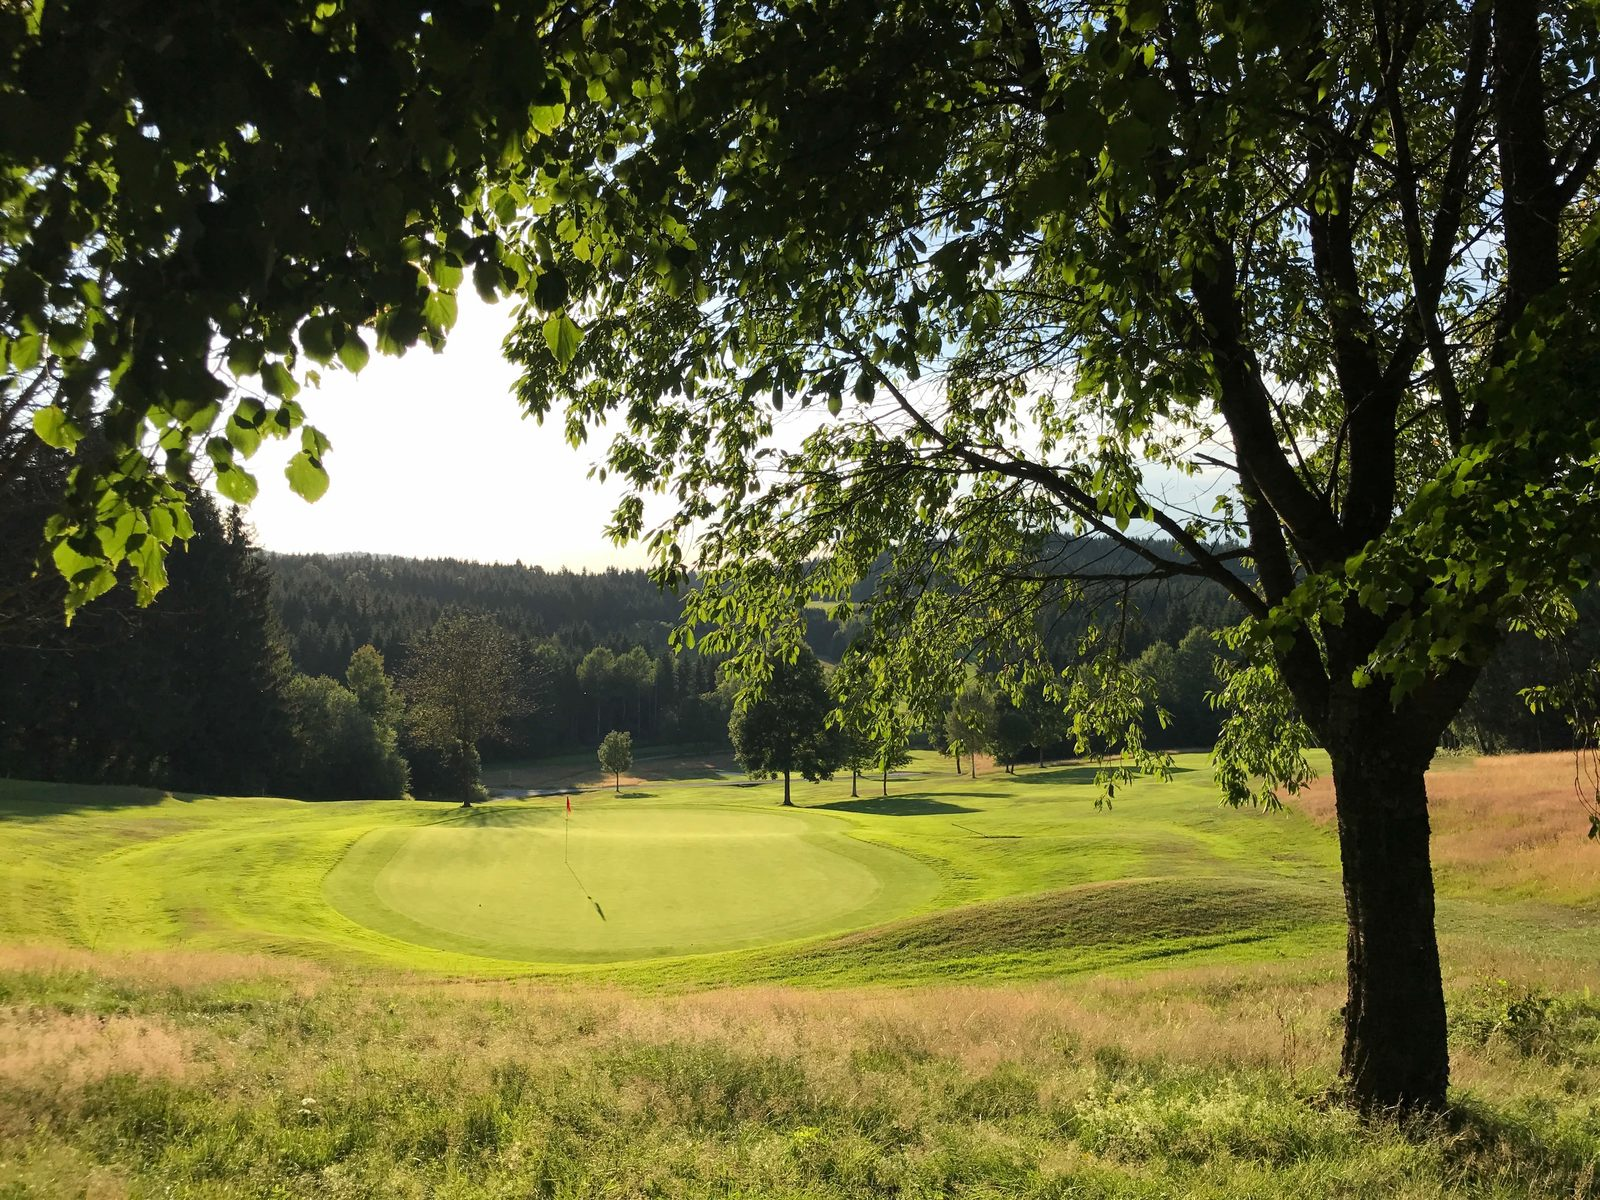 The Golfpark Böhmerwald  - Bohemia Forest